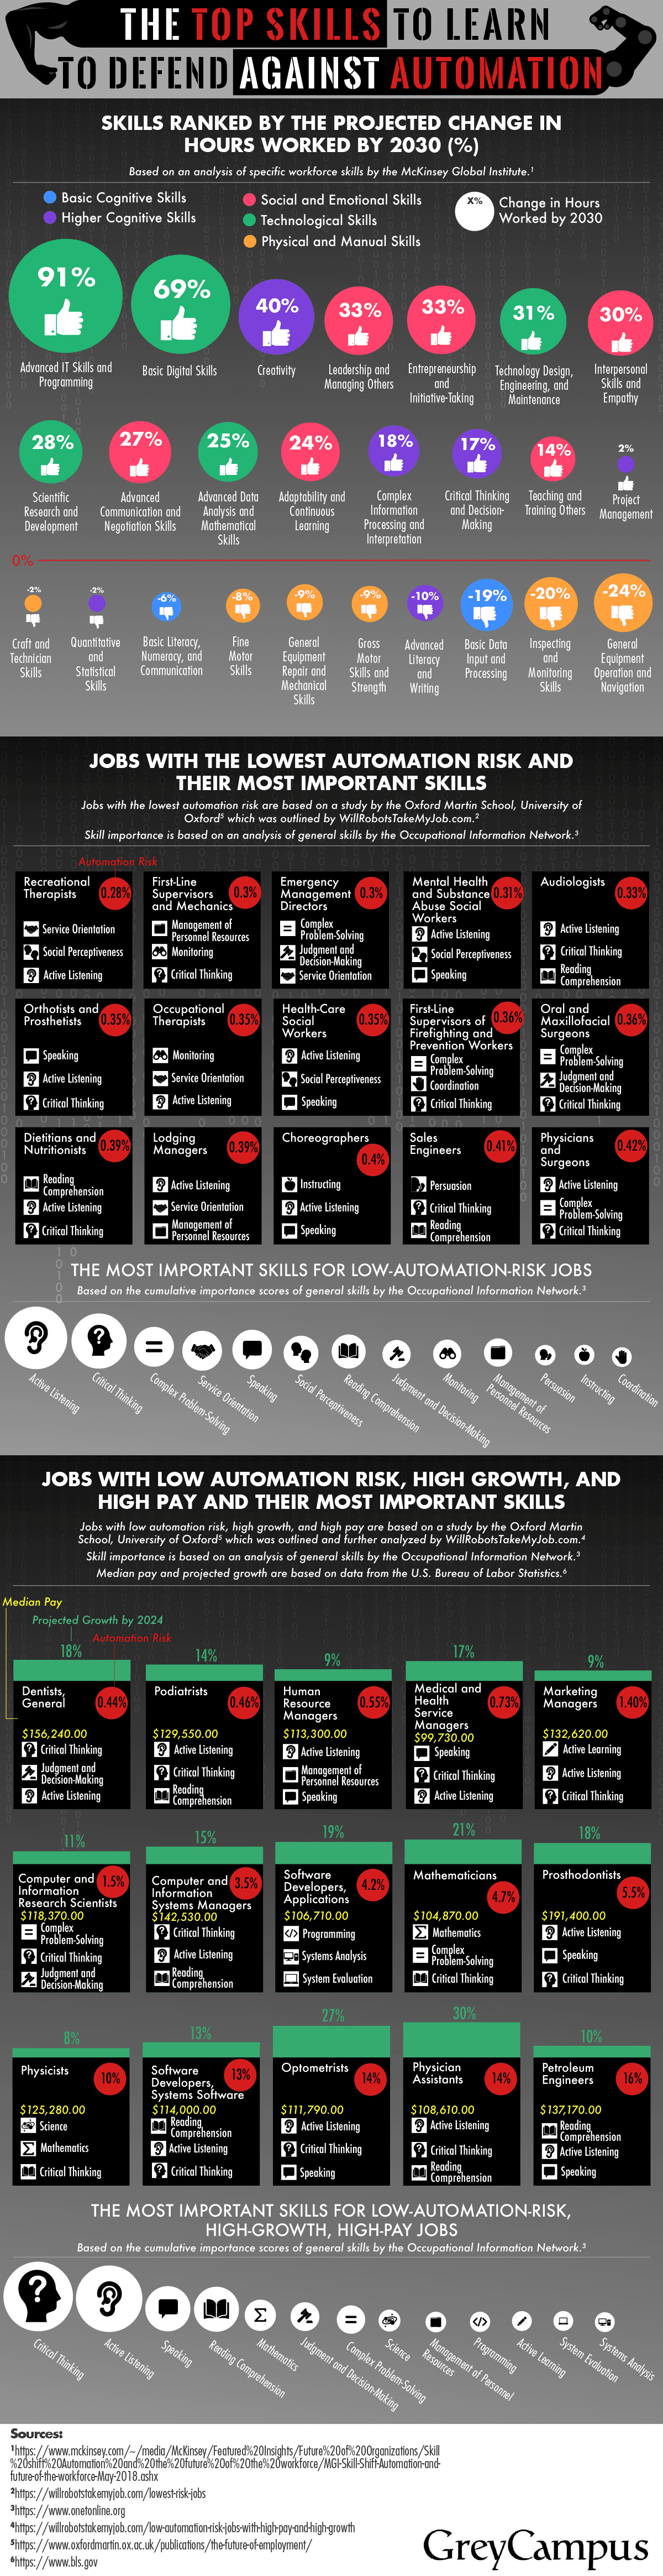 The Top Skills to Learn to Defend Against Automation #infographic